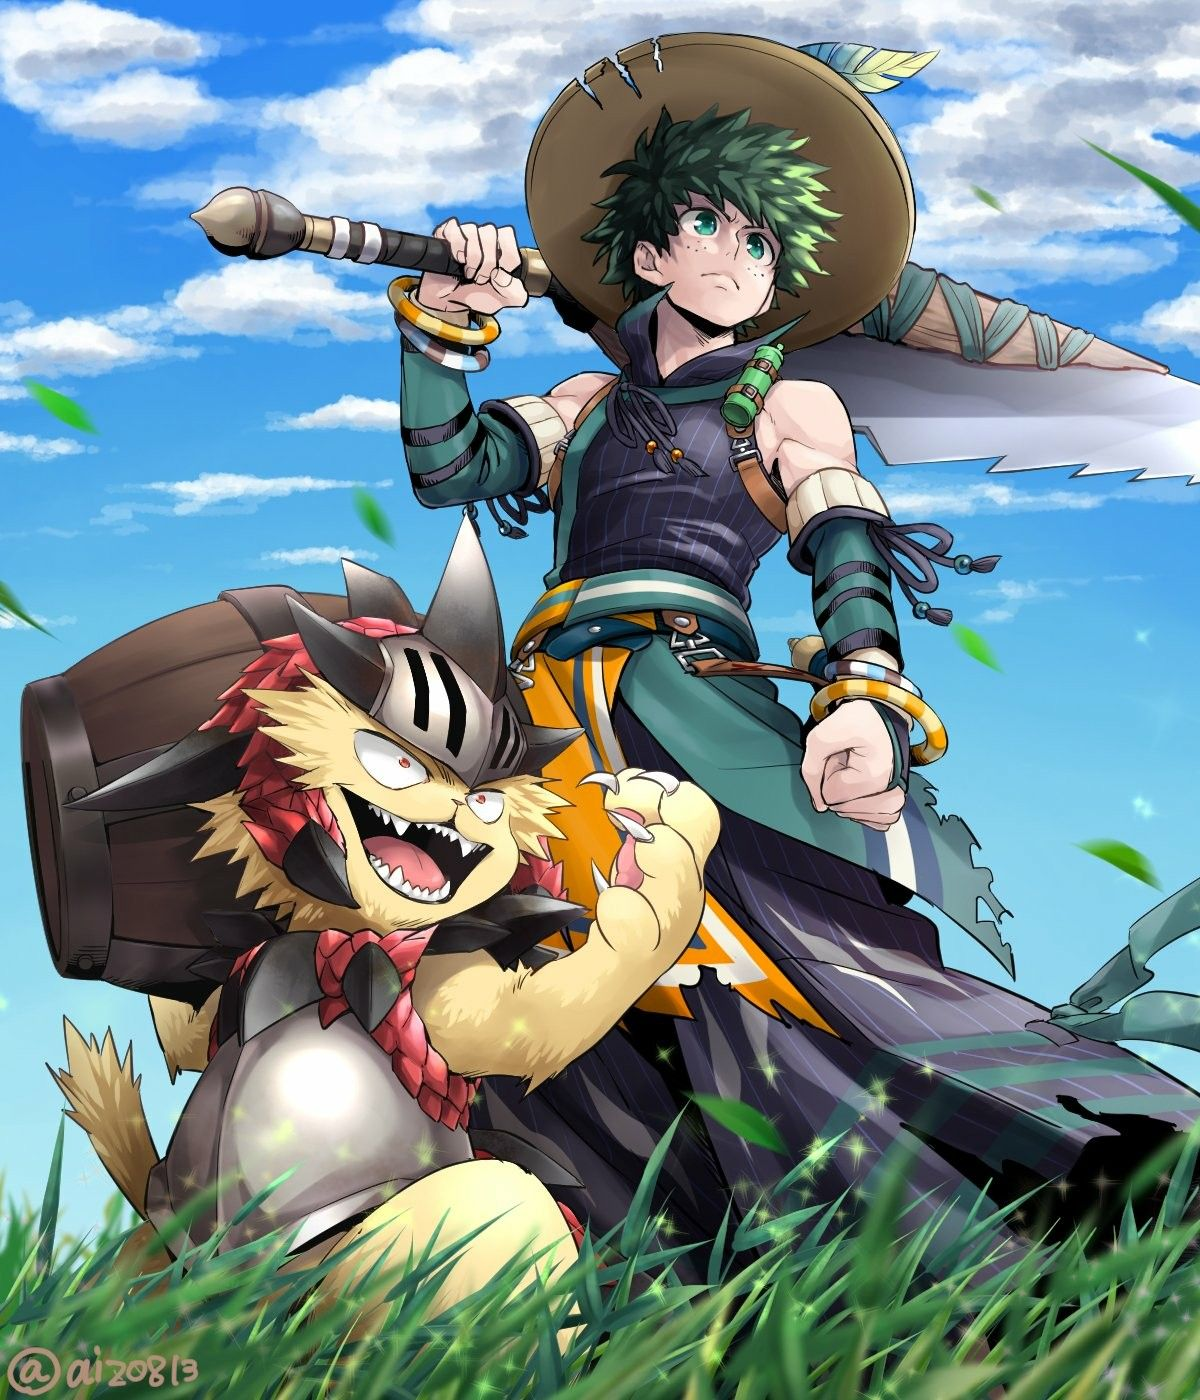 Anime Word: Is This Like The New Monster Hunter AU?